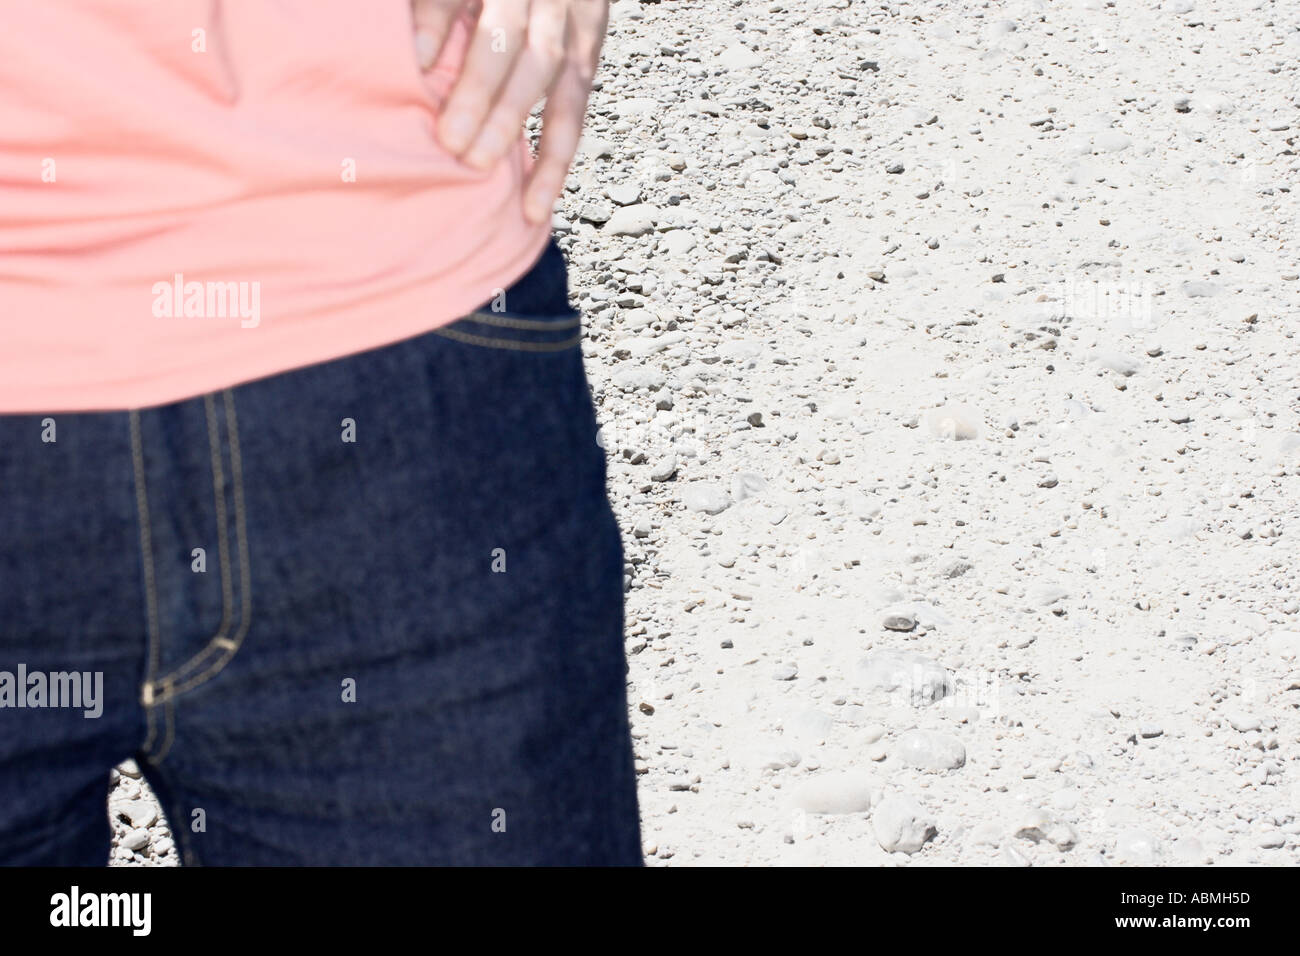 Woman Wearing Blue Jeans Standing On Dirt Road - Stock Image